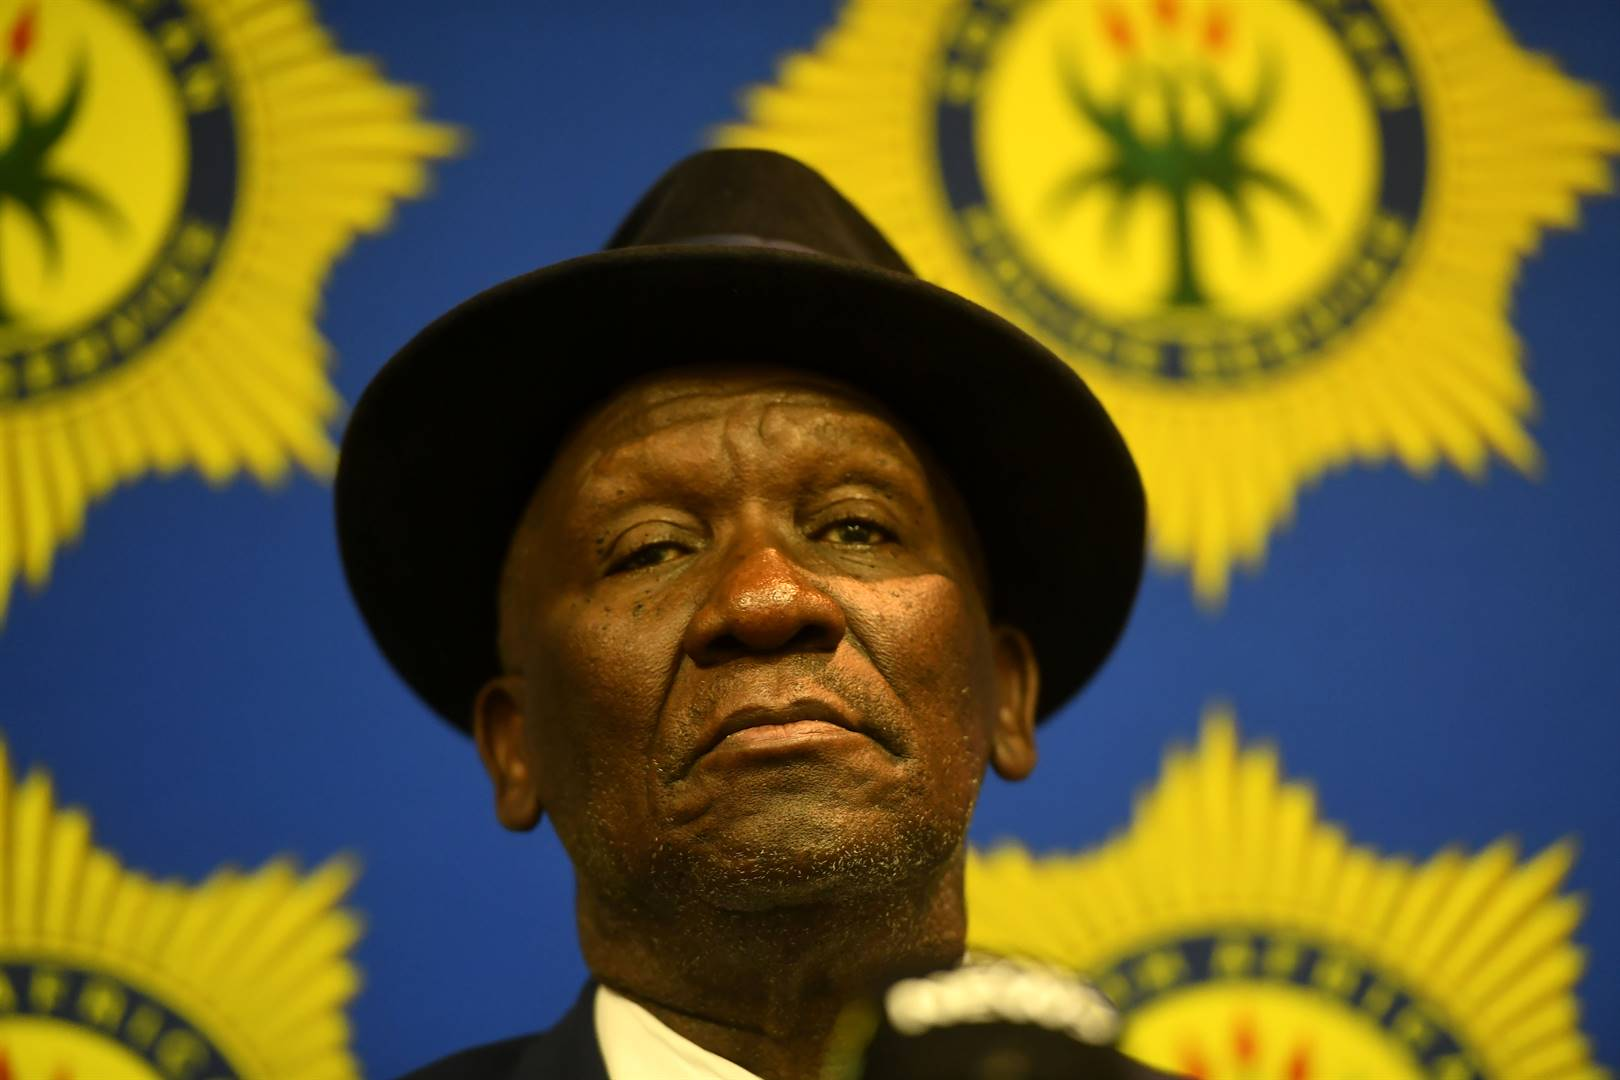 National murder rate over festive season declined by 1.4% - Cele - News24